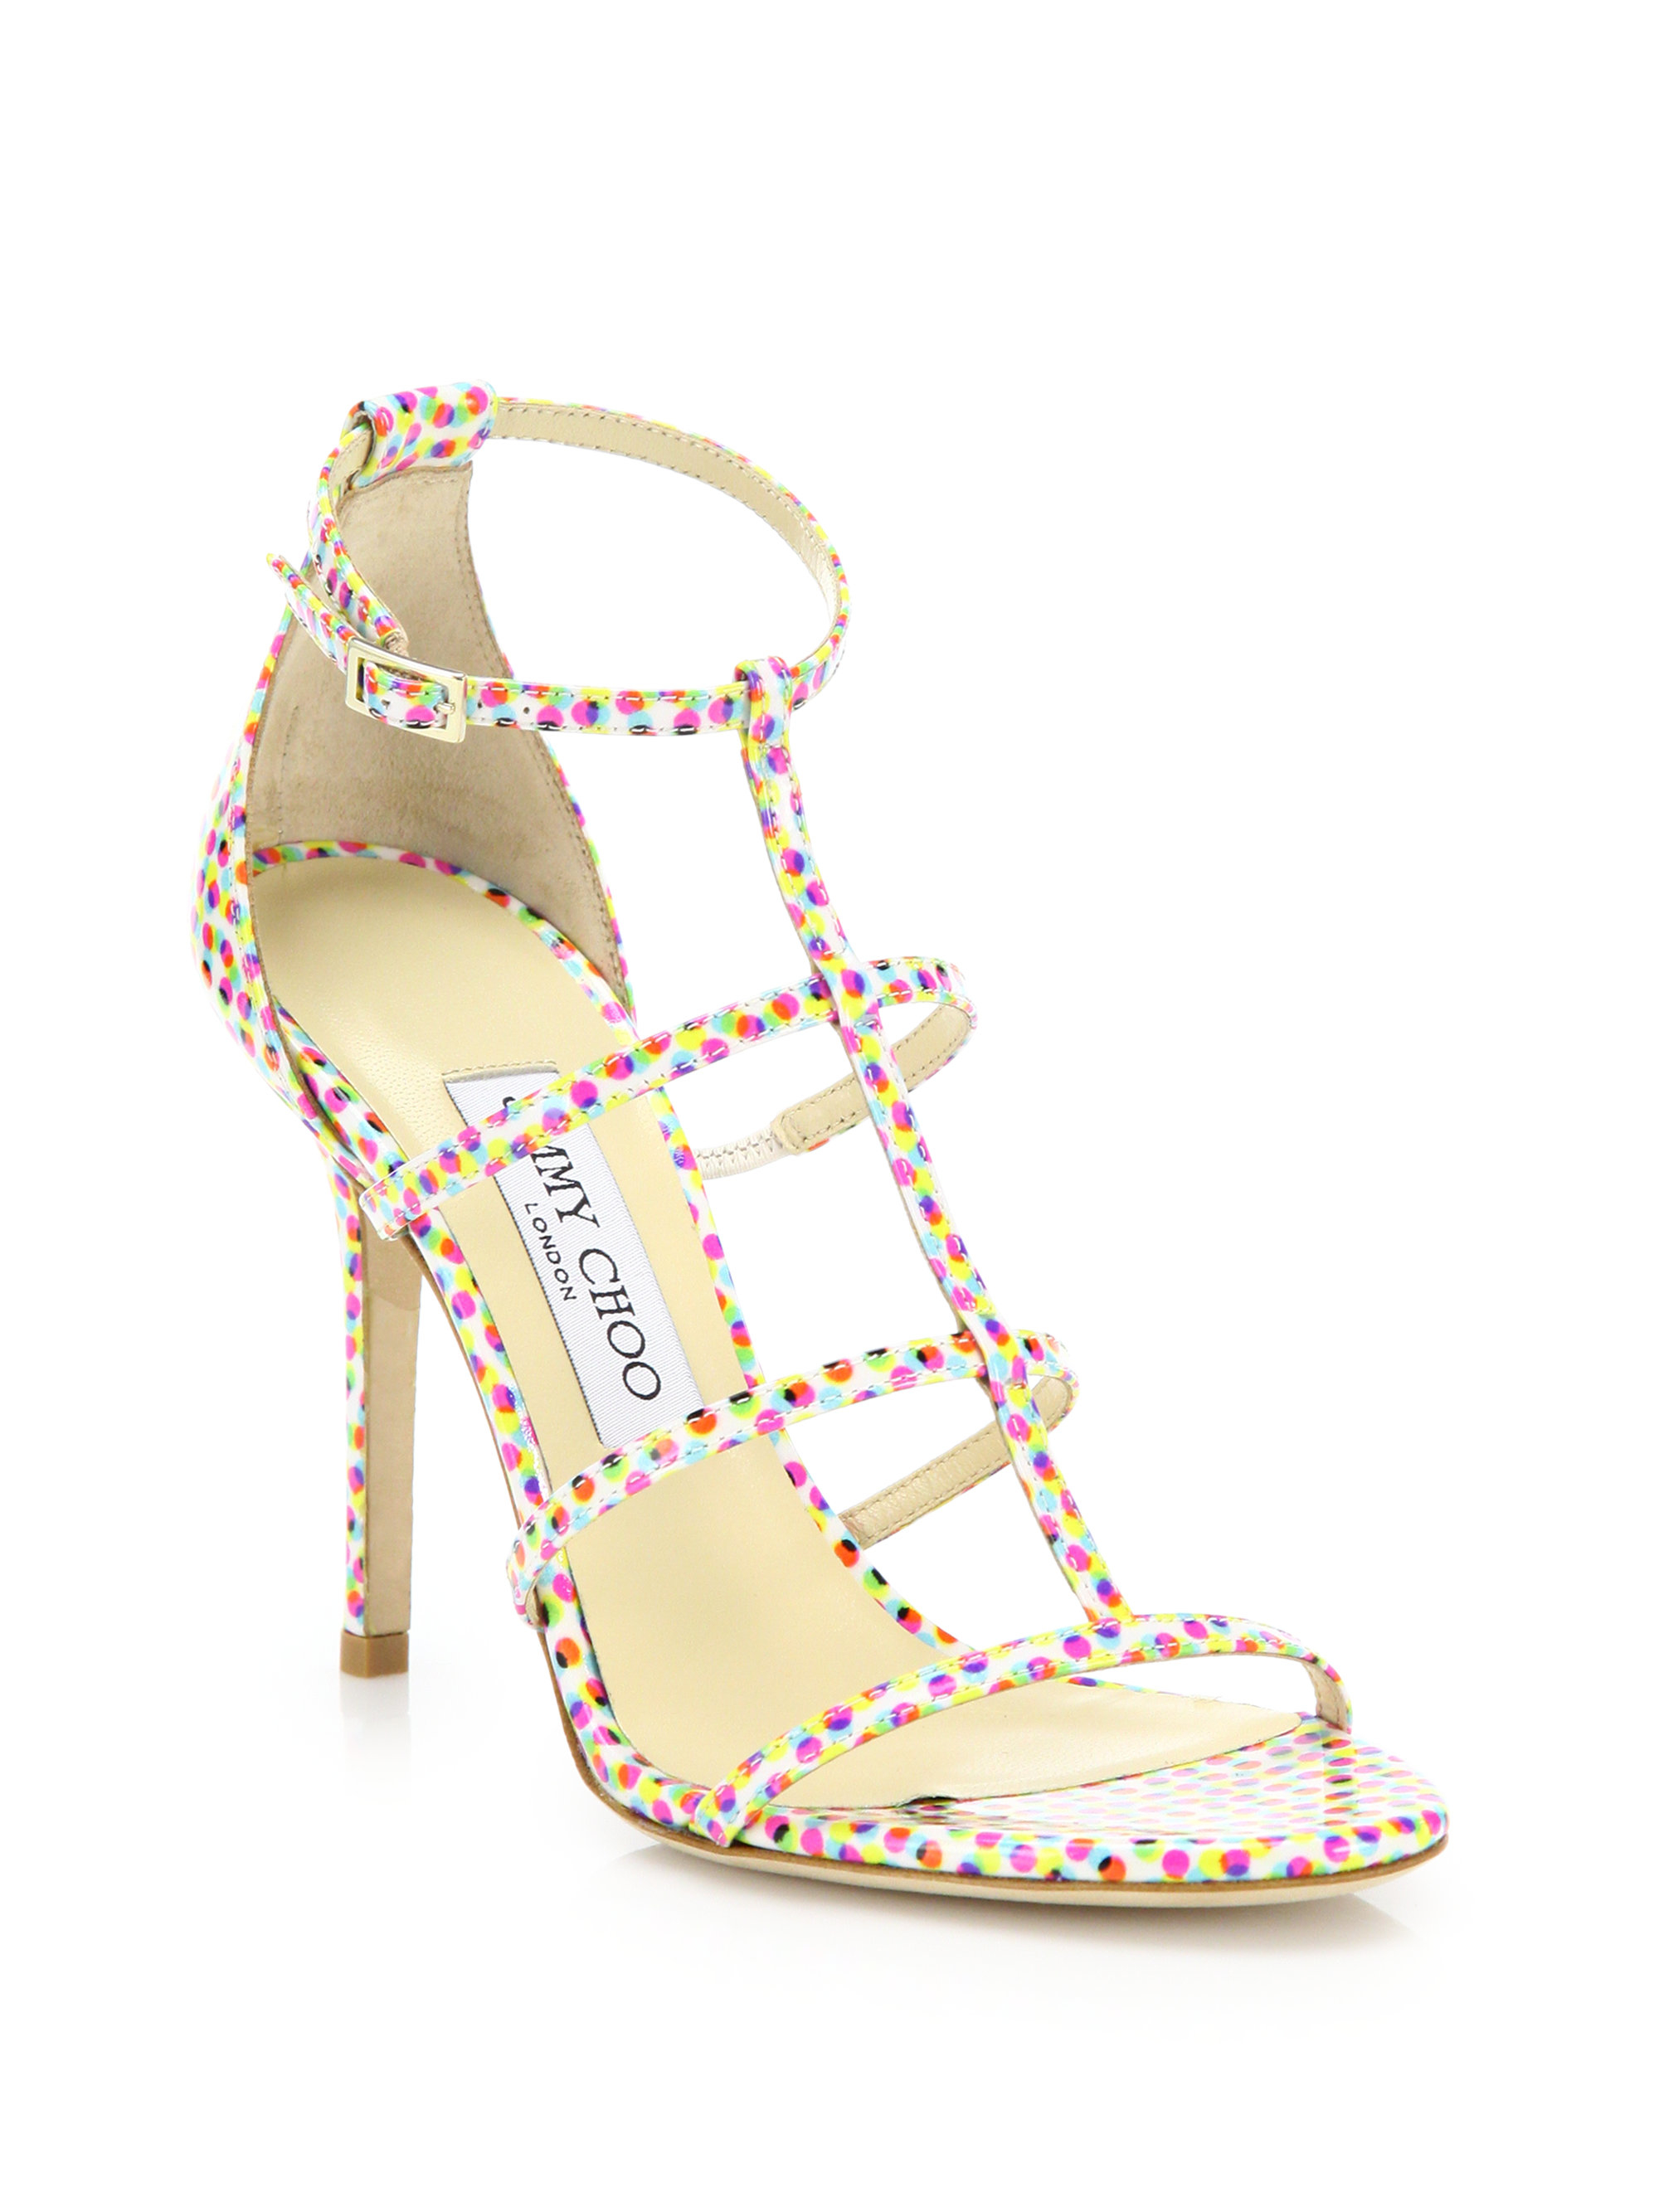 Jimmy Choo Dory Printed Sandals finishline online free shipping footlocker pictures buy cheap prices big sale cheap online with paypal for sale V6vOU5x8